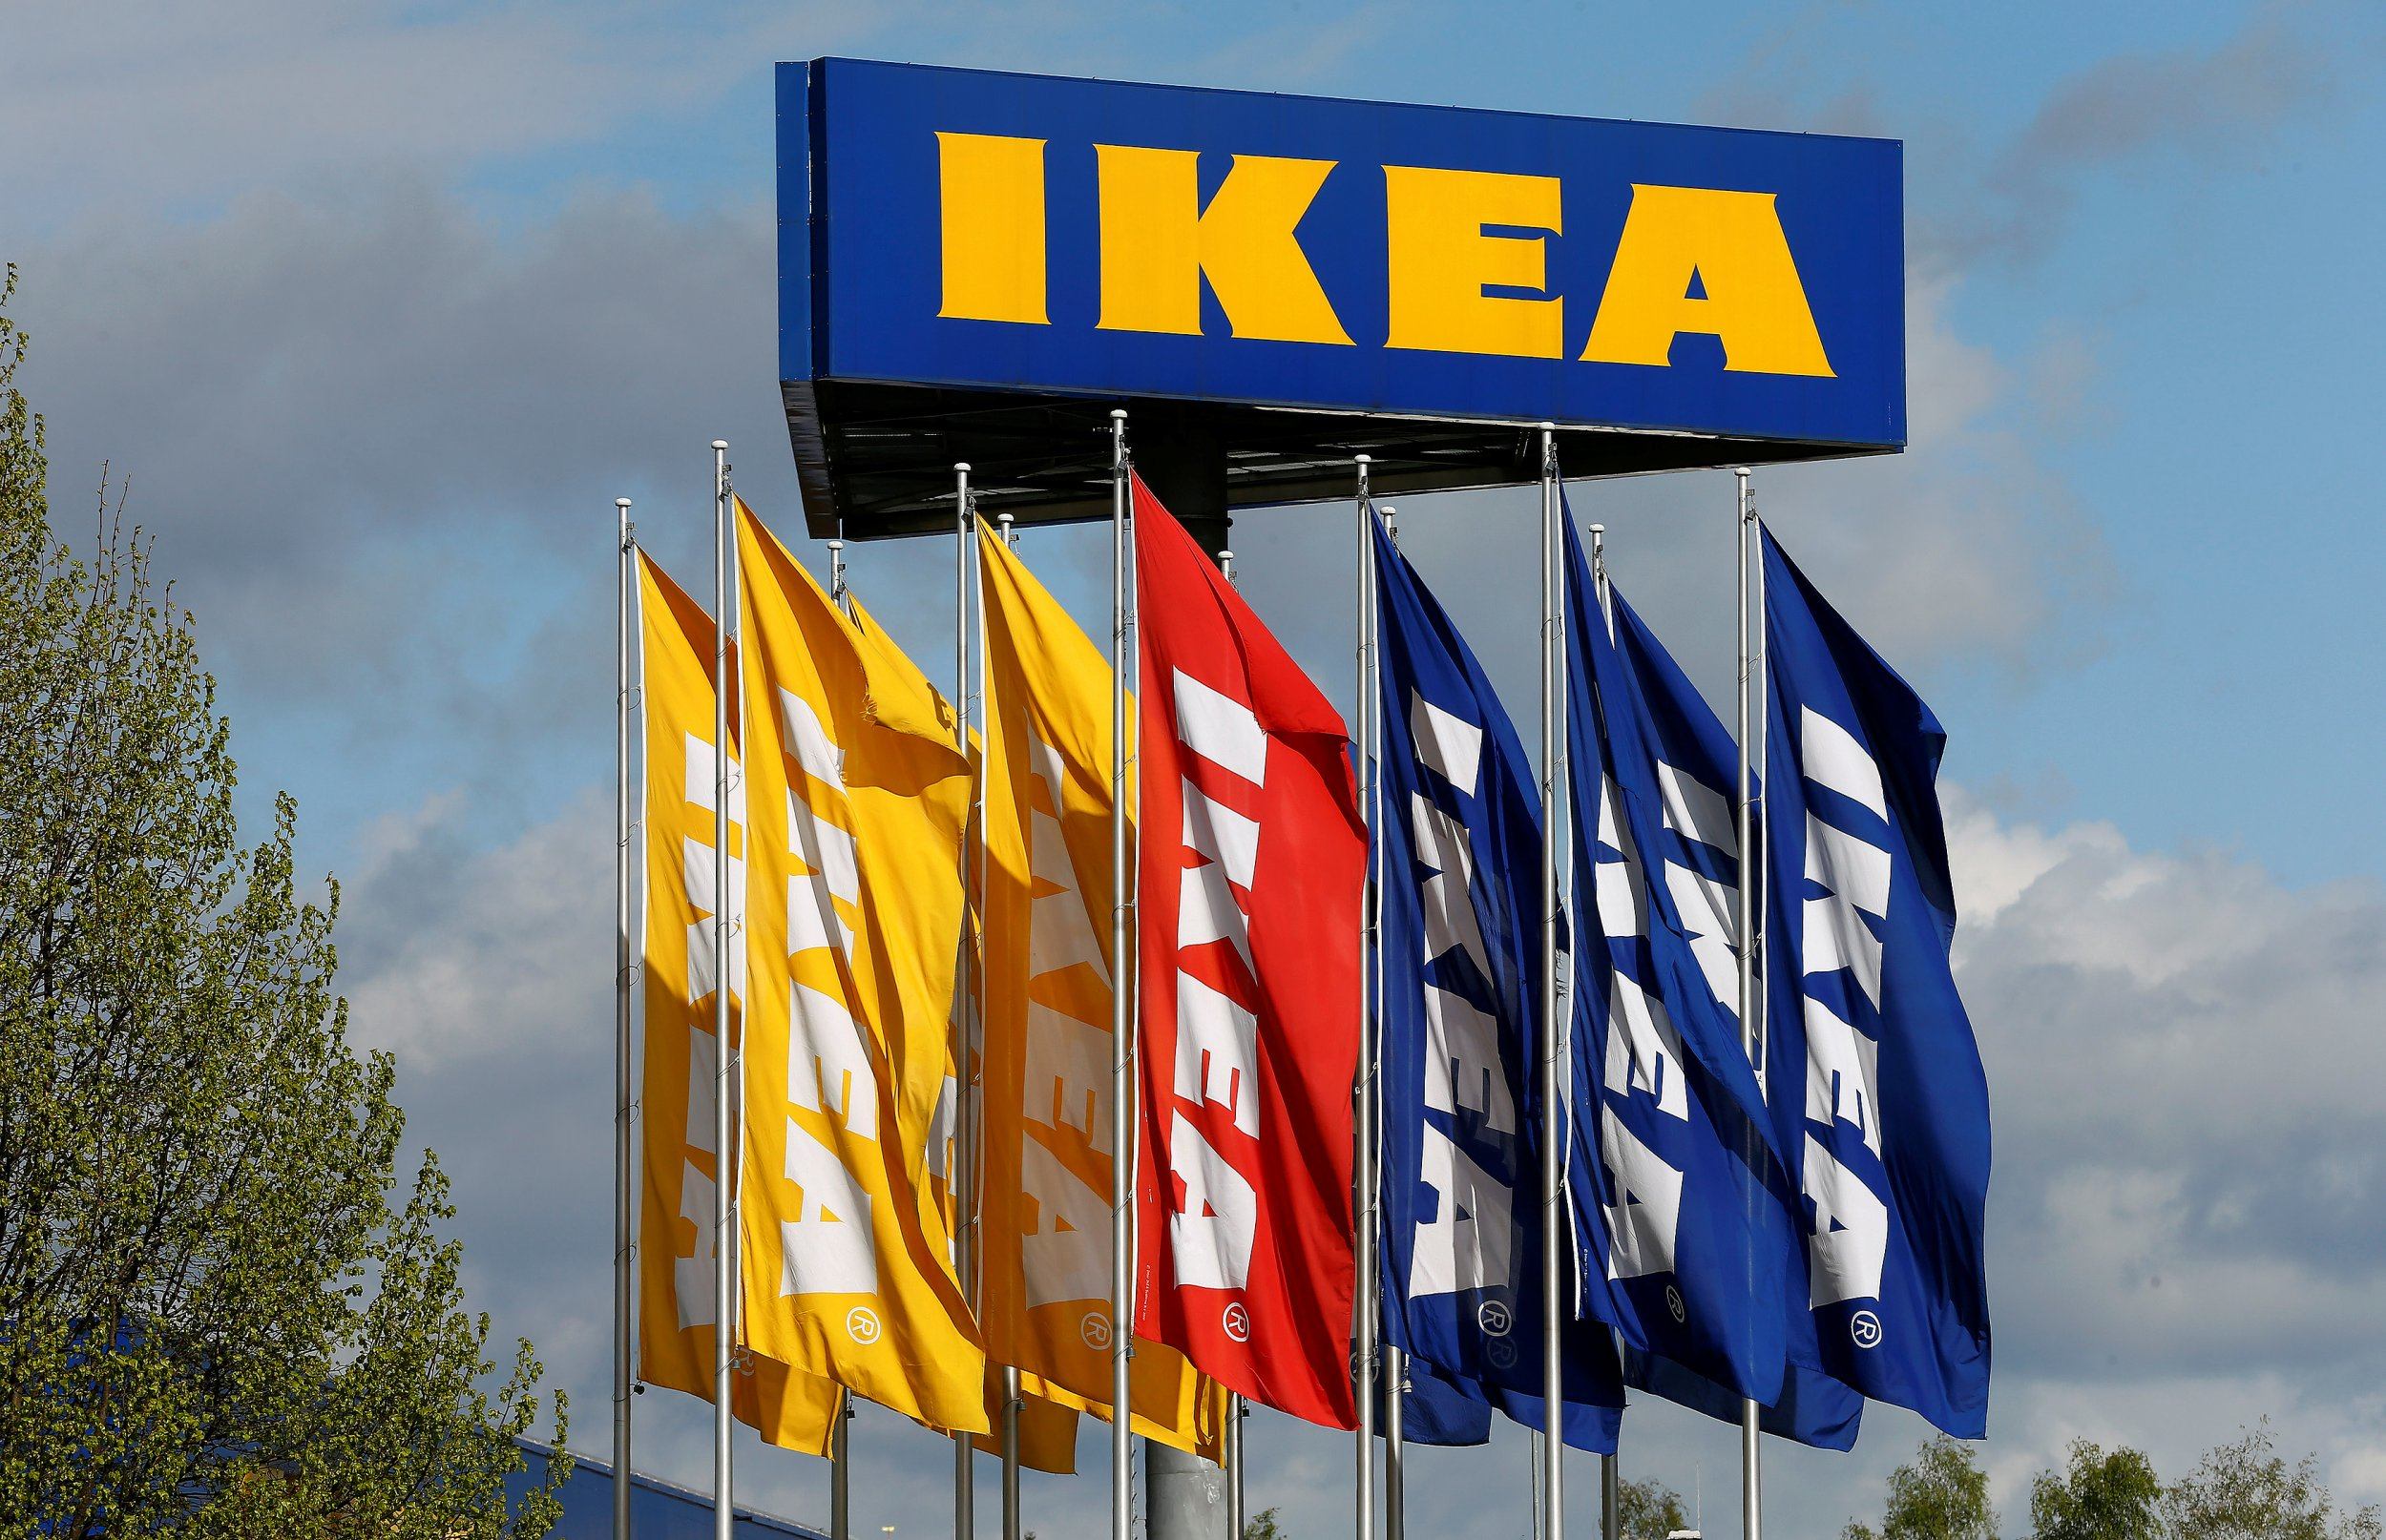 Flags Outside An Ikea Store In Spreitenbach, Switzerland, April 27, 2016.  An Ikea Restaurant Is Set To Open In Paris, Staffed By Amateur Chefs.